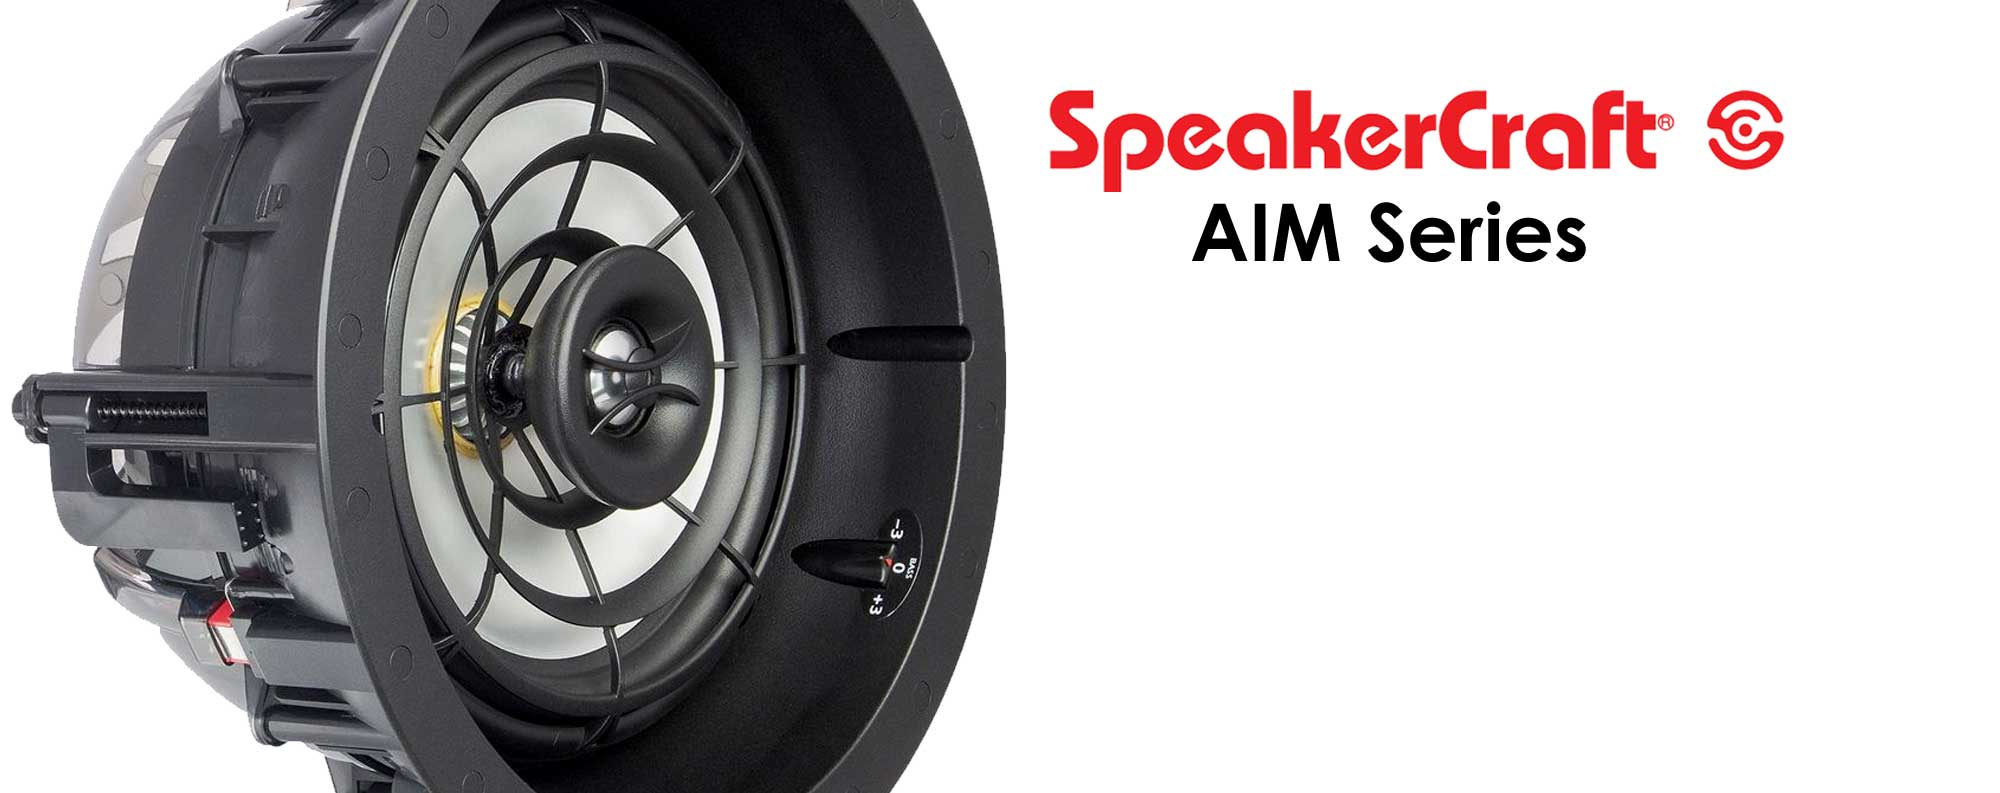 Speakercraft Aim Series Inceiling Speakers